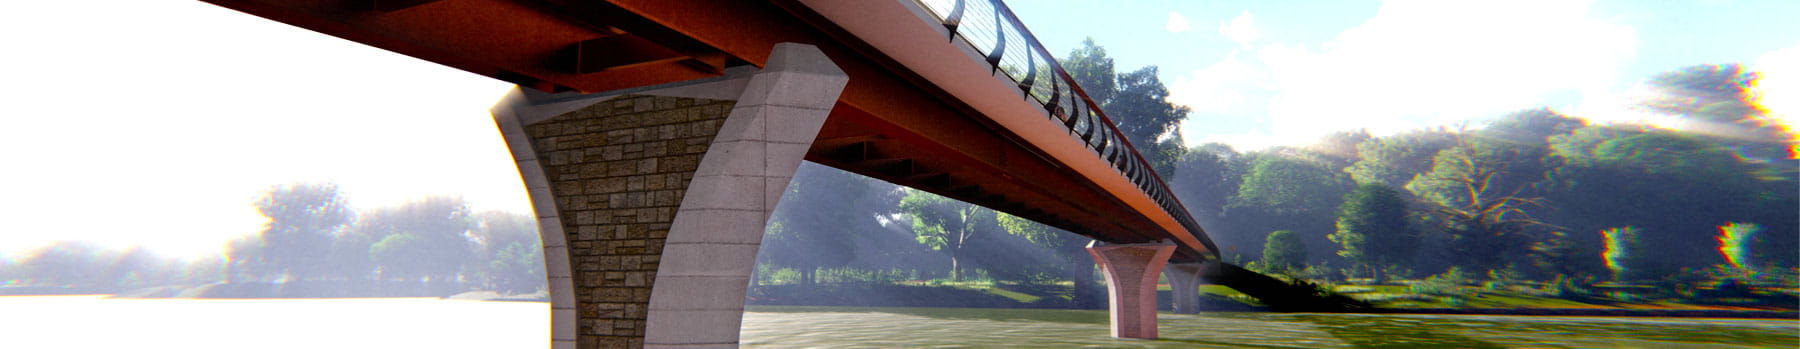 OpenBridge Designer - Concrete/Steel Bridge Design and Anaylsis Software